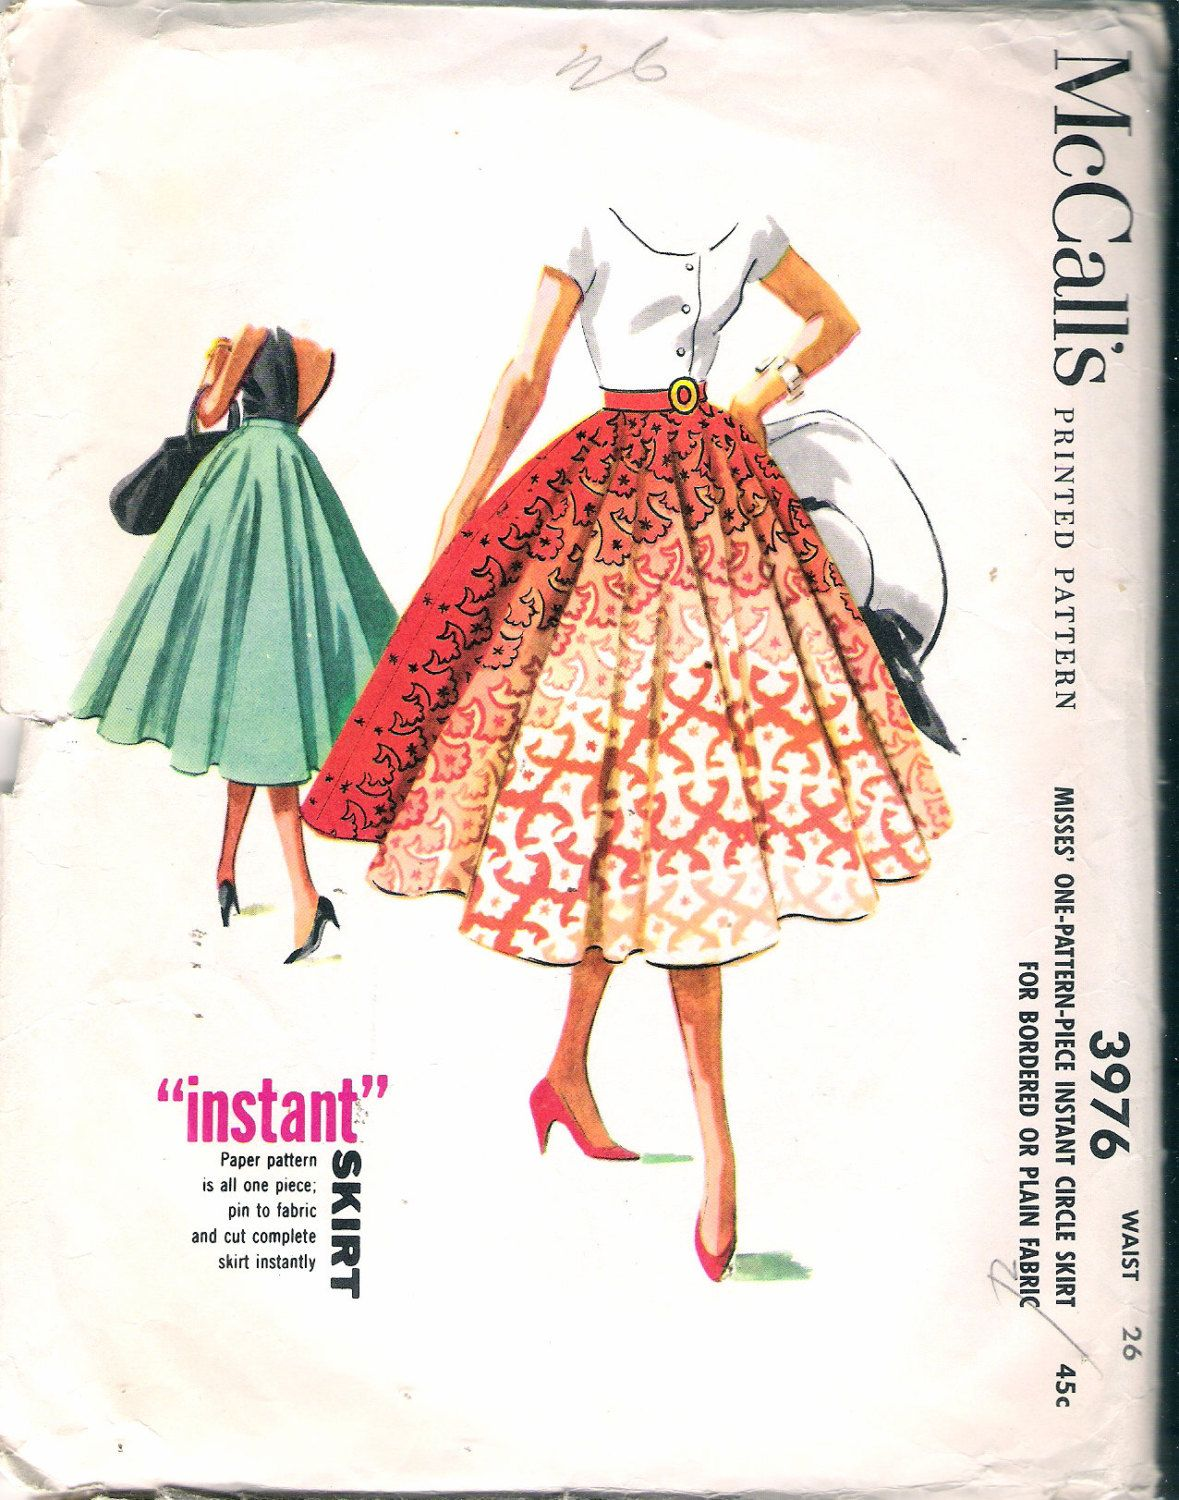 Vintage 1956 mccalls 3976 circle skirt sewing pattern size waist vintage 1956 mccalls 3976 circle skirt sewing pattern size waist 26 uncut by recycledelic1 on jeuxipadfo Gallery